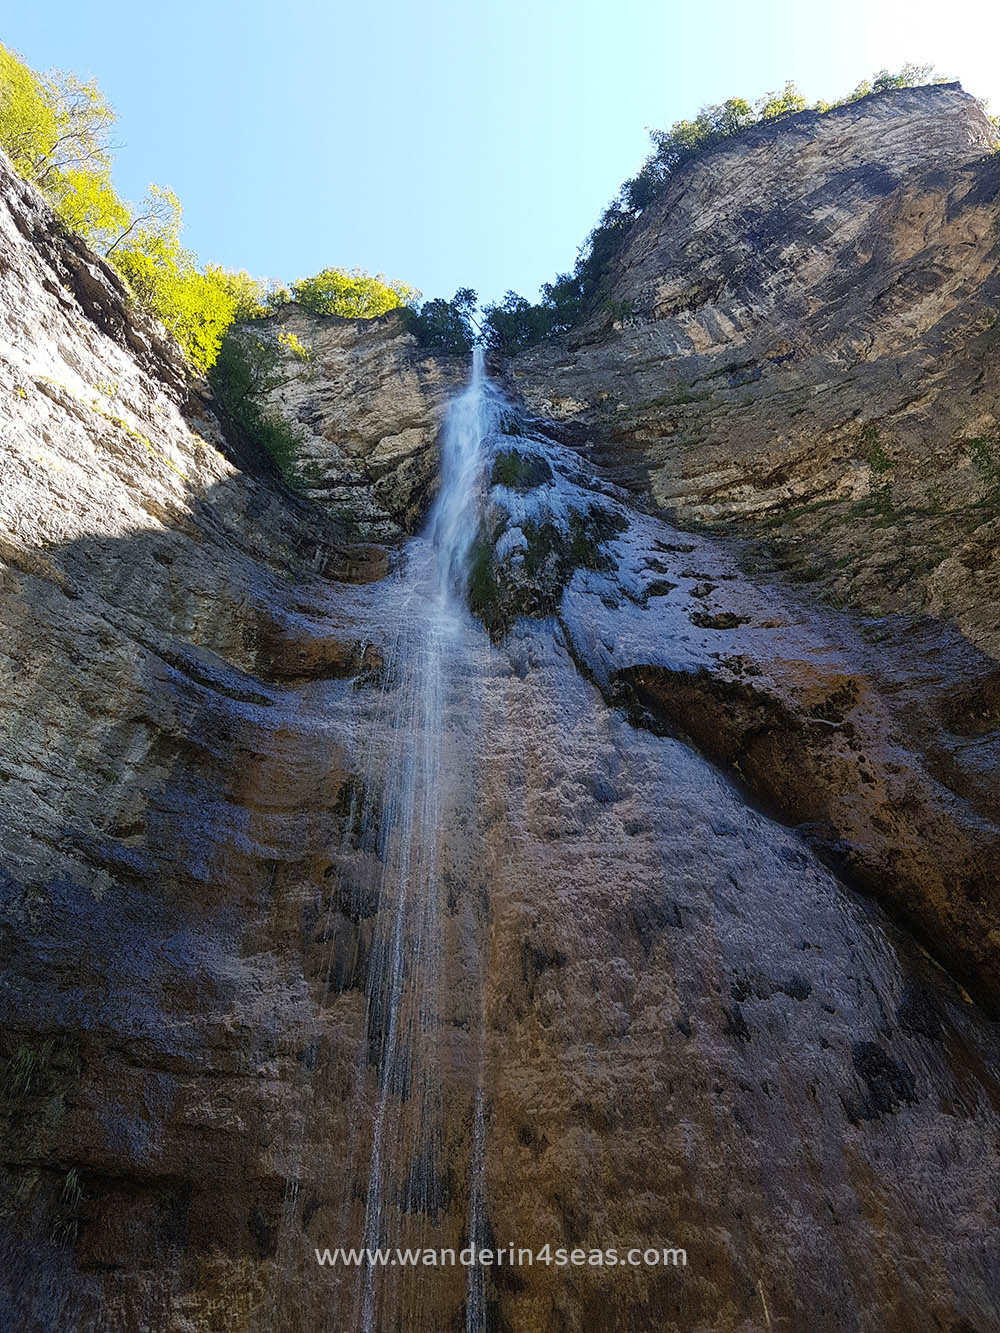 The waterfall along VF Burrone Giovanelli